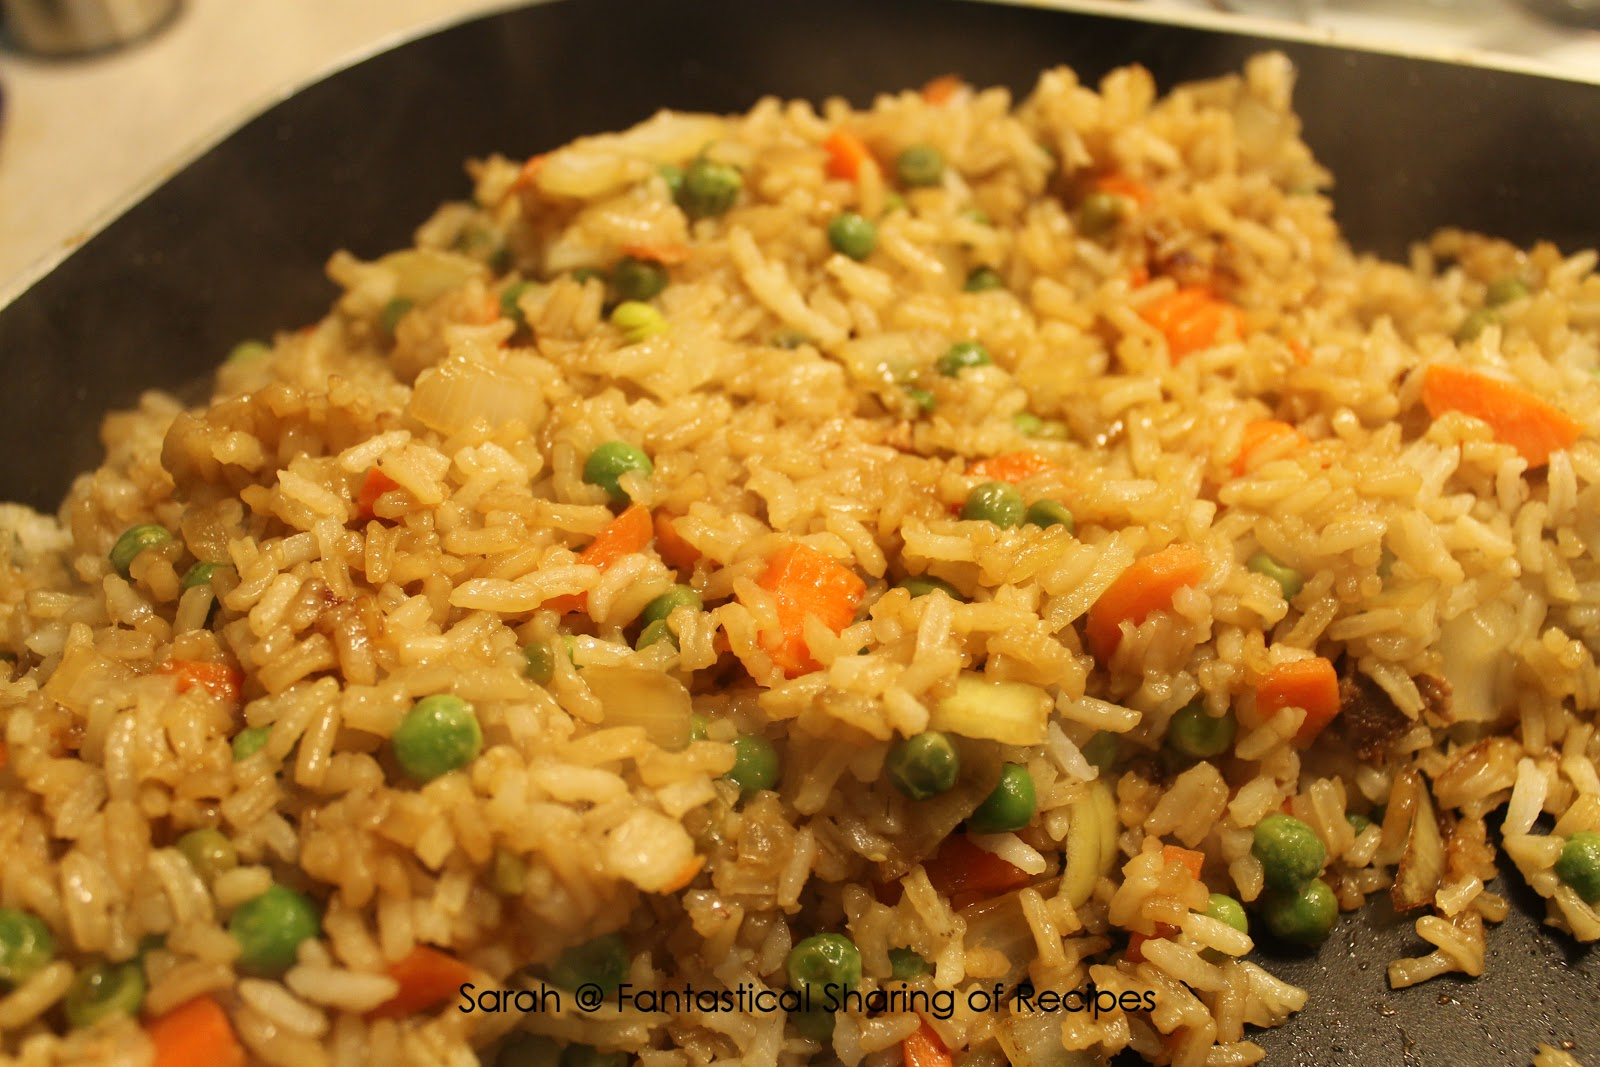 Mixed vegetables, Fried rice and Shrimp on Pinterest